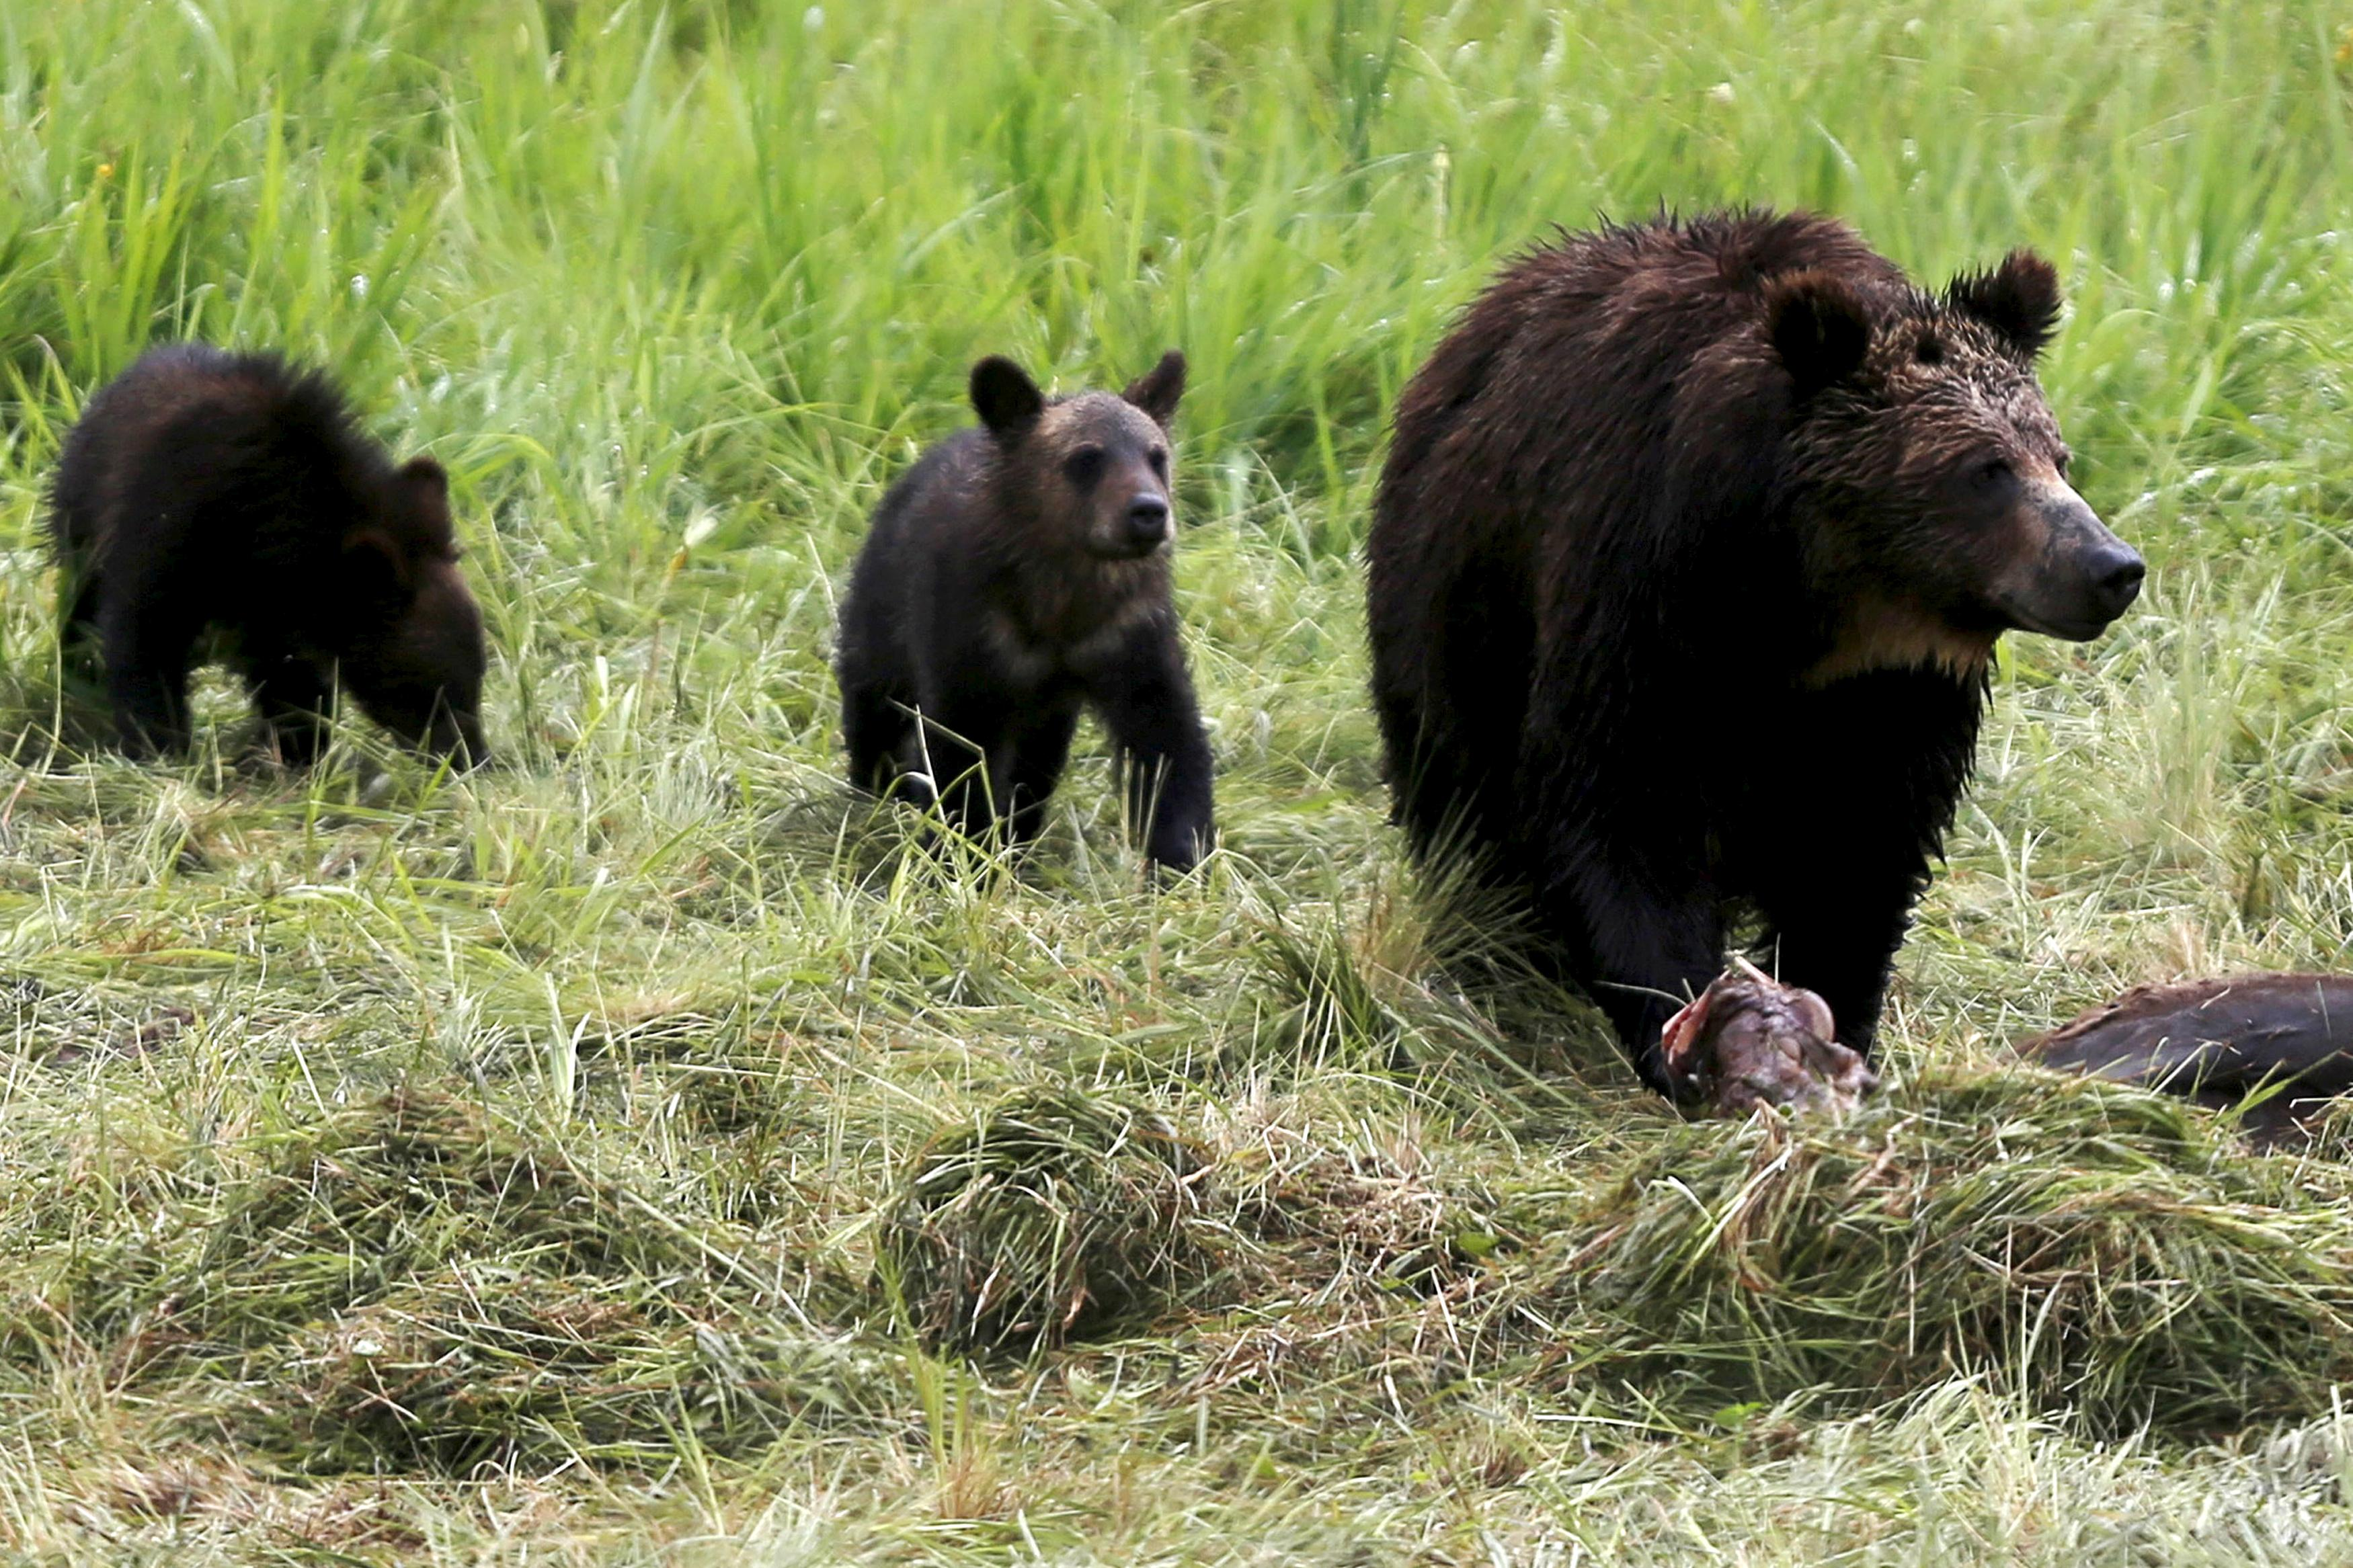 A grizzly bear and her two cubs approach the carcass of a bison in Yellowstone National Park in Wyoming, United States, July 6, 2015. Jim Urquhart